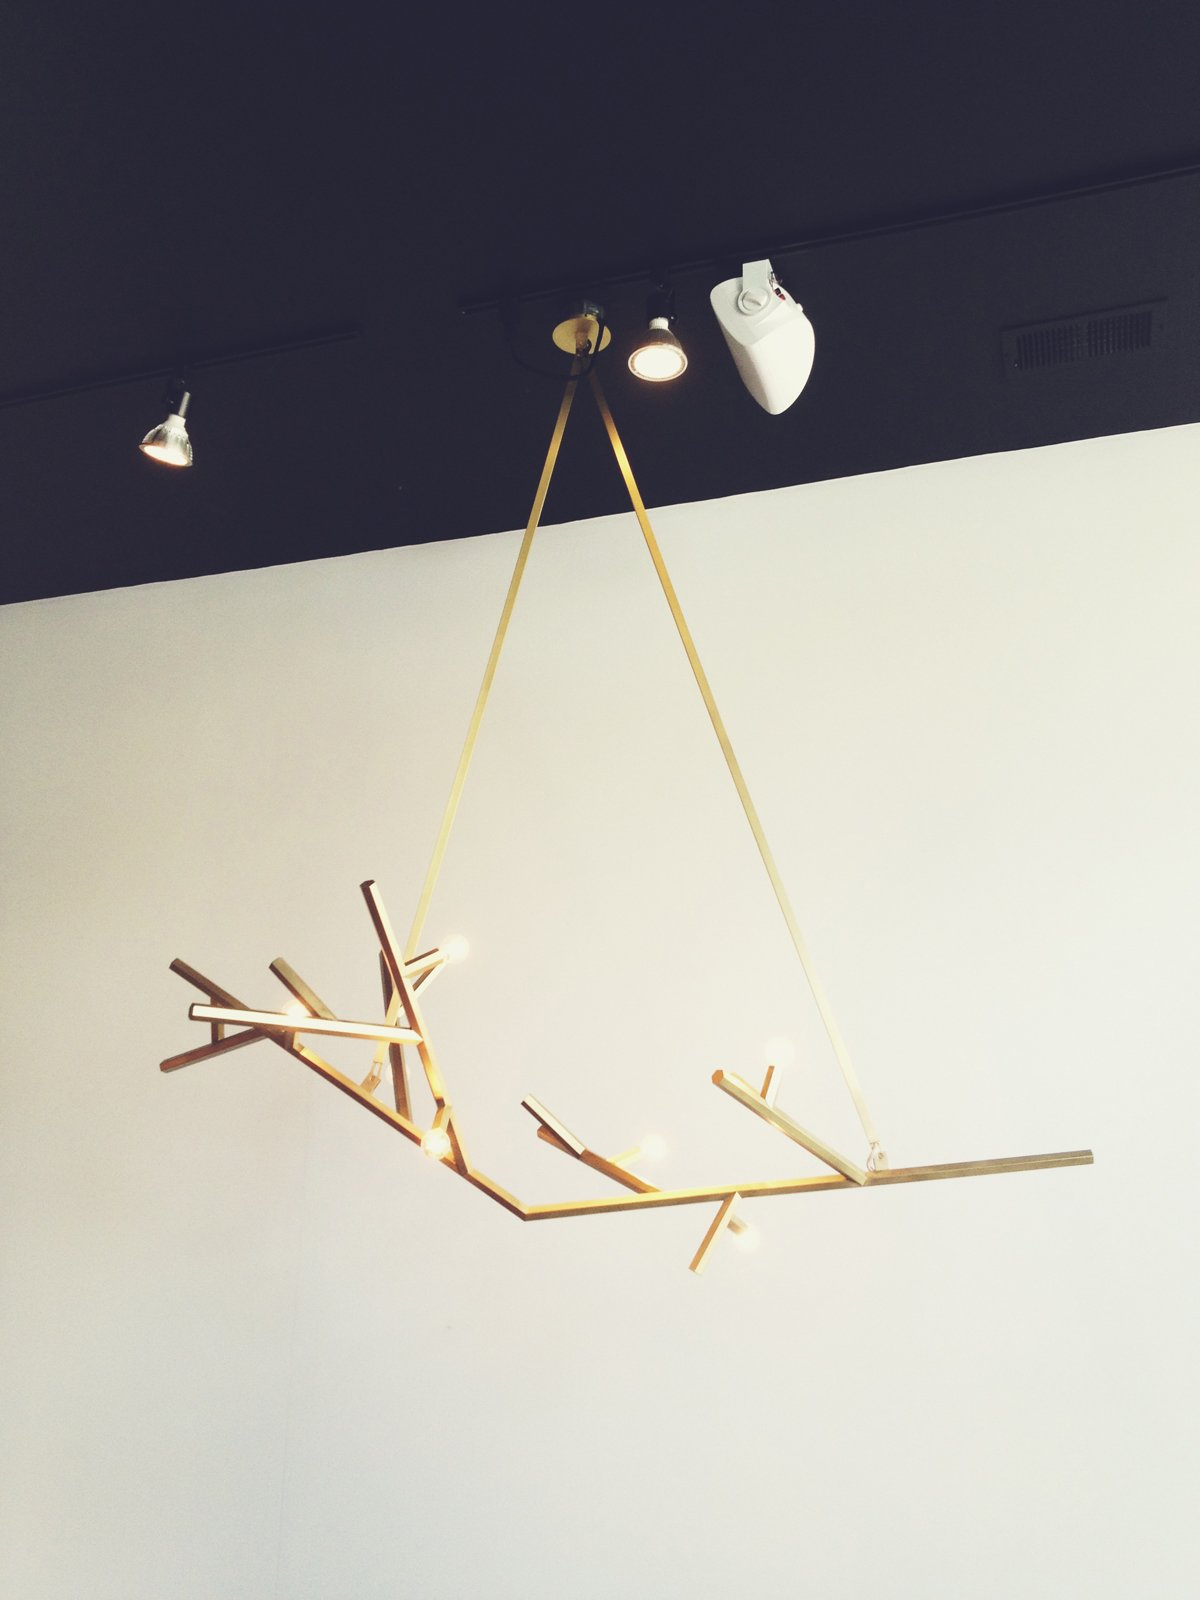 A gold branched fixture by San Francisco-based interior, lighting, and furniture designer Charles de Lisle.